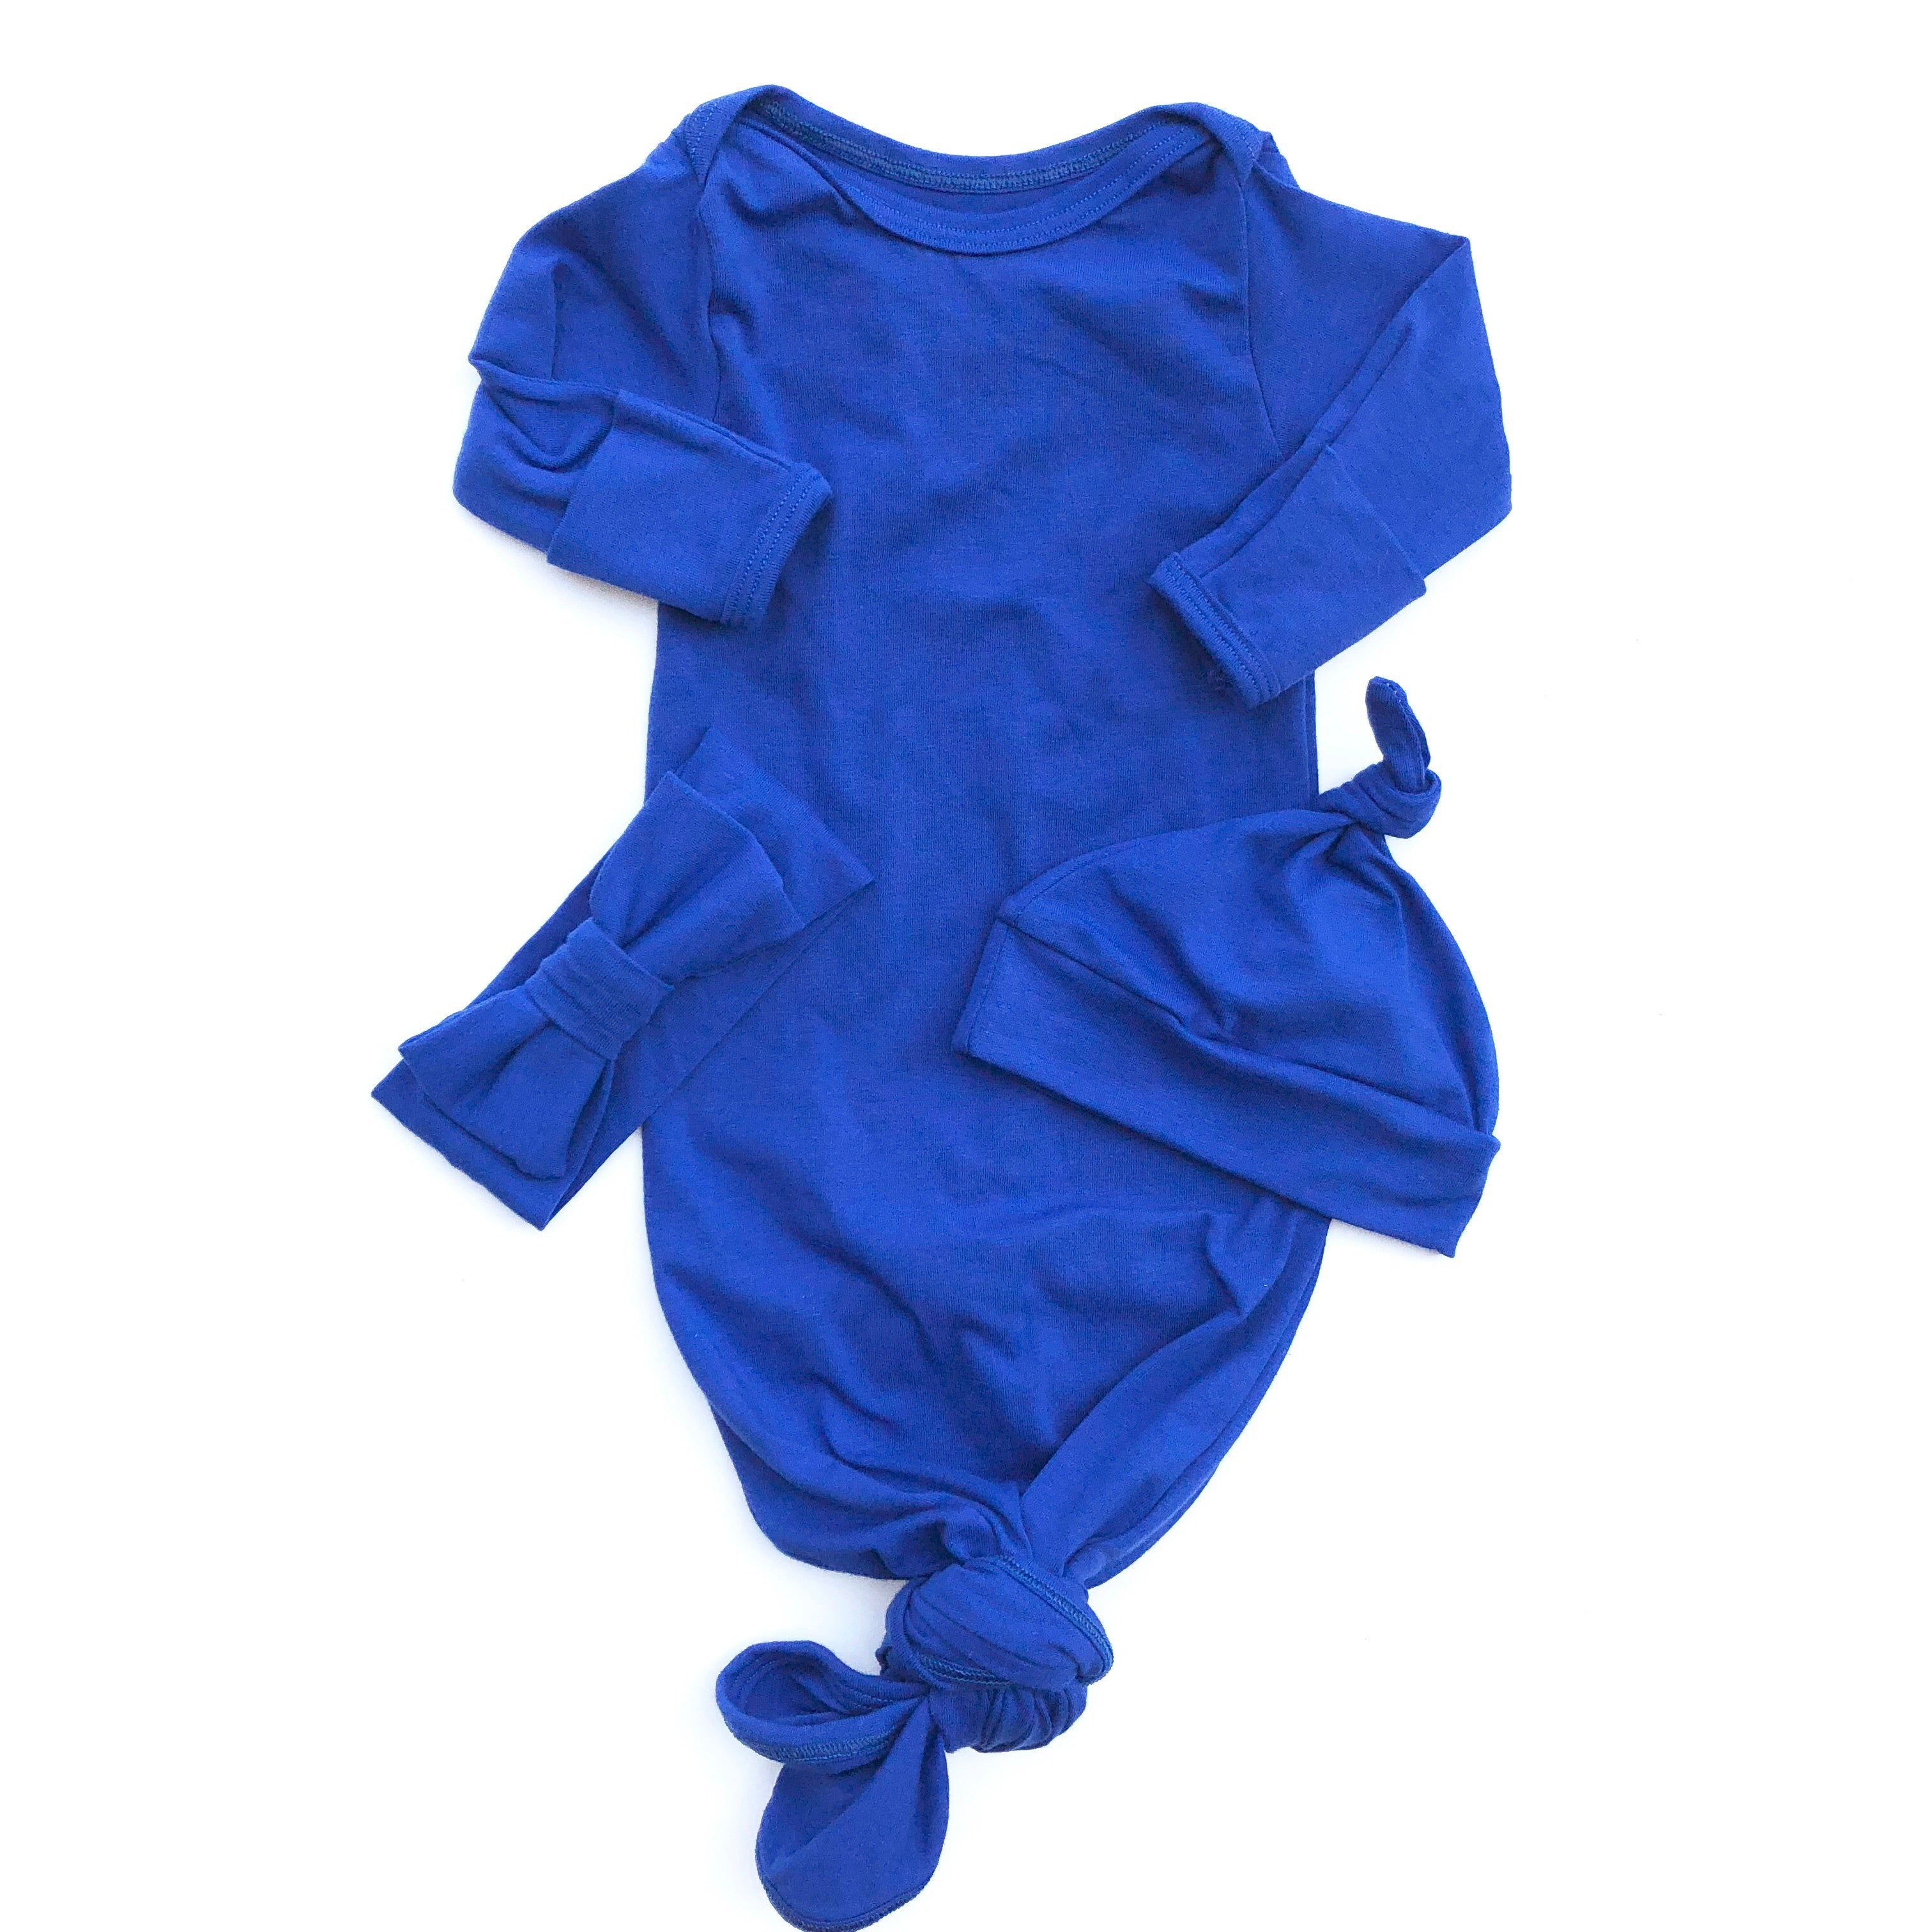 Cobalt Blue Knotted Bottom Baby Layette Gown - Oh So Vera